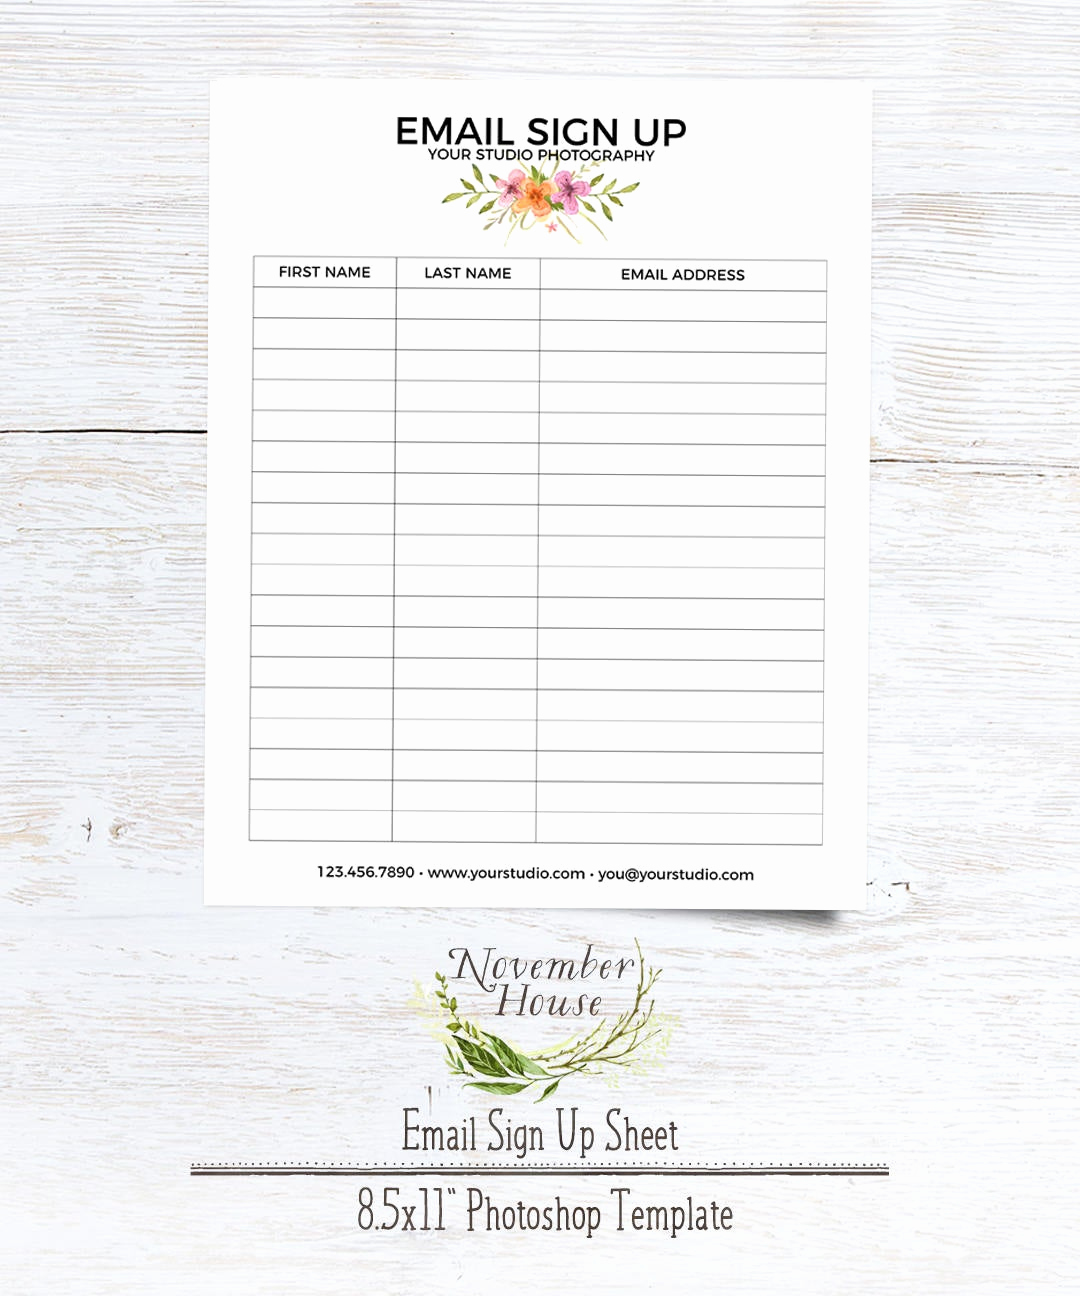 Email Sign Up Sheet Awesome Email Sign Up Sheet Graphy forms Plus Studio Stationery